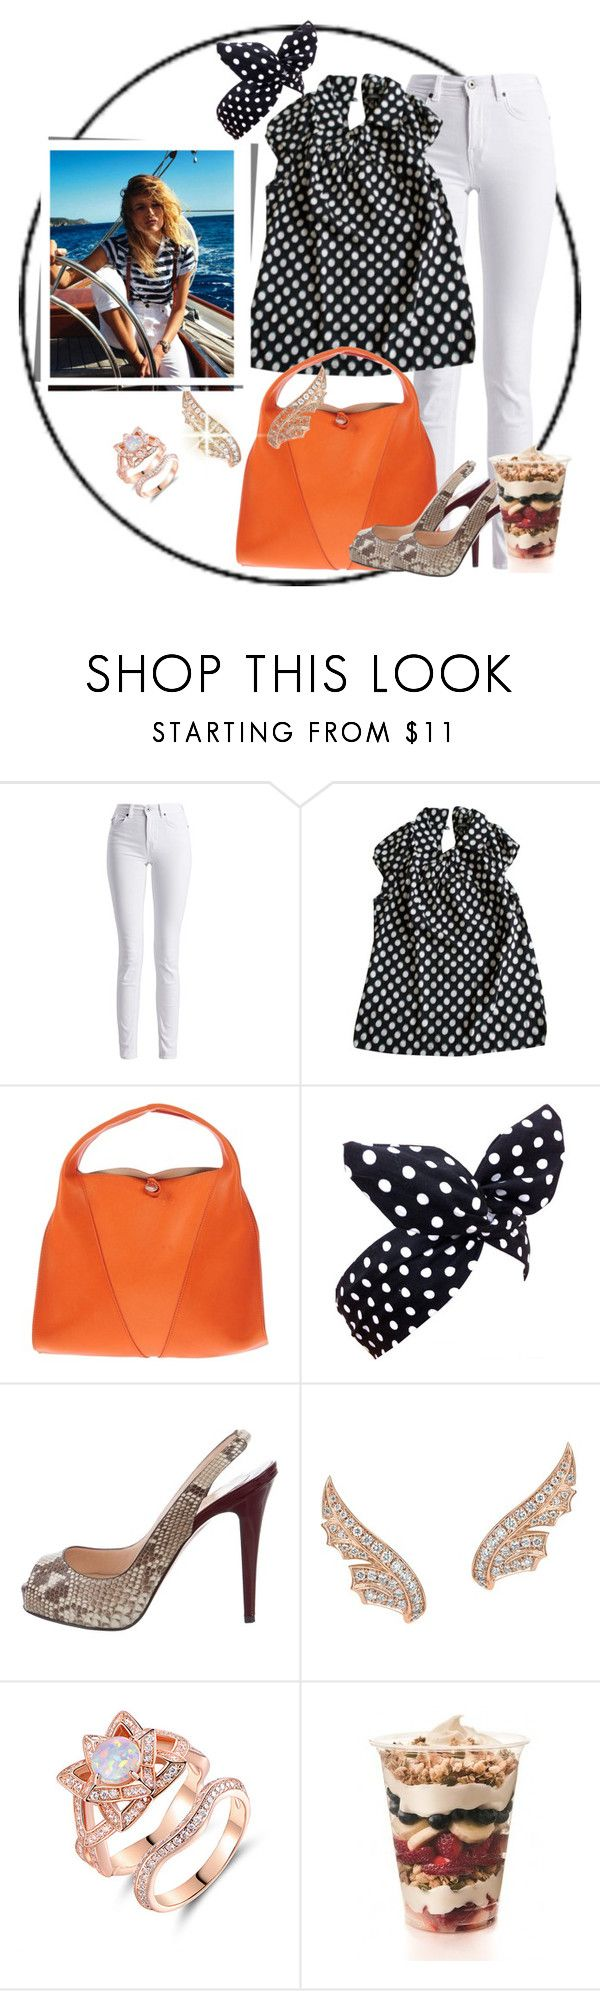 """My big orange bag"" by sweetsmellofsuccess ❤ liked on Polyvore featuring Barbour International, Tara Jarmon, Orciani, Lulu in the Sky, Christian Louboutin, Stephen Webster and Peermont"